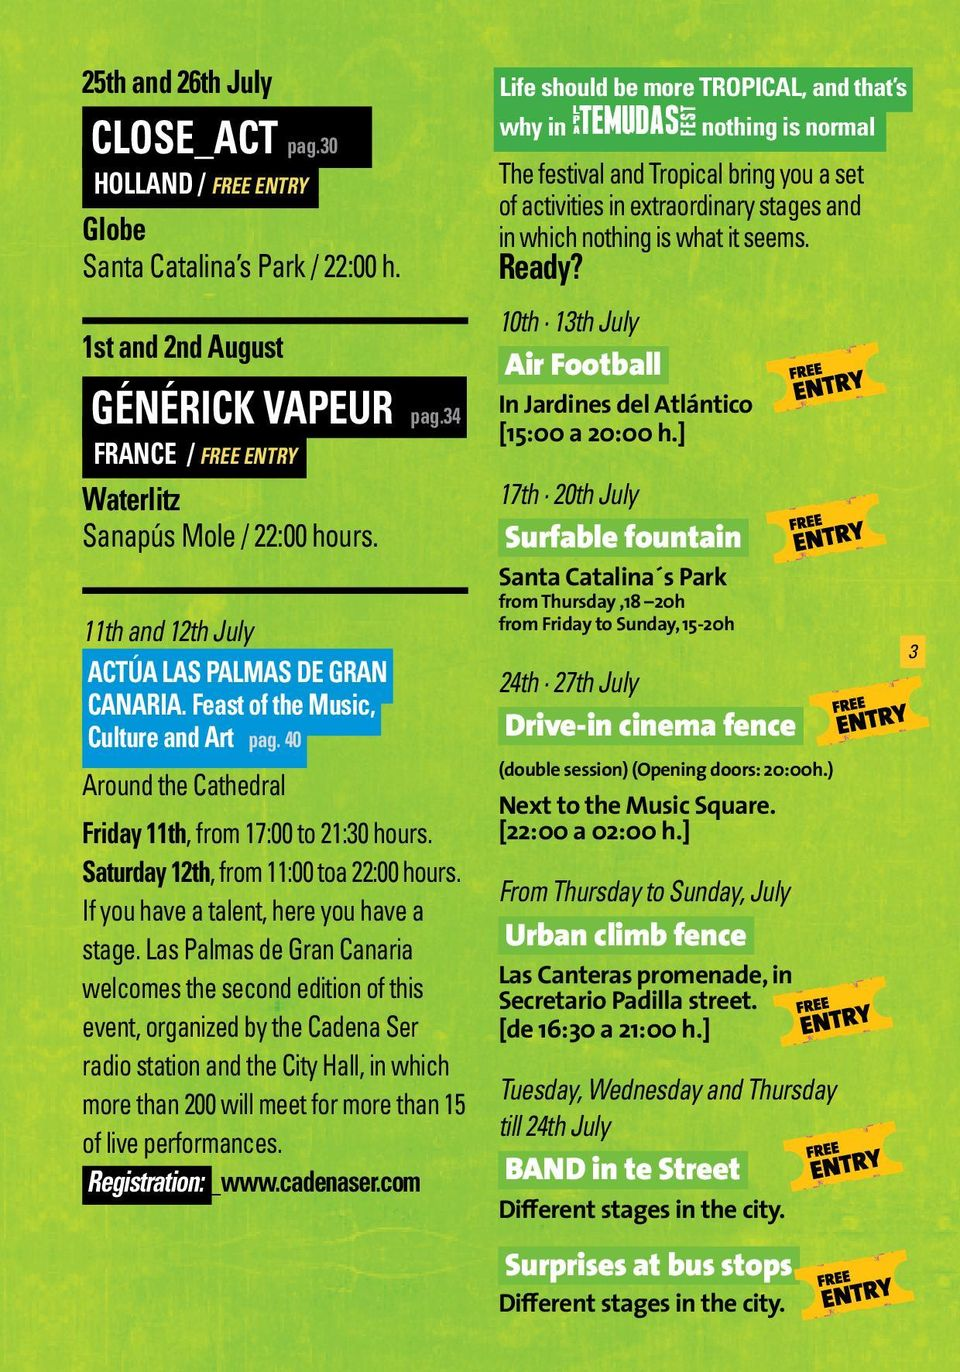 1st and 2nd August GÉNÉRICK VAPEUR pag.34 FRANCE / FREE ENTRY Waterlitz Sanapús Mole / 22:00 hours. 11th and 12th July ACTÚA LAS PALMAS DE GRAN CANARIA. Feast of the Music, Culture and Art pag.